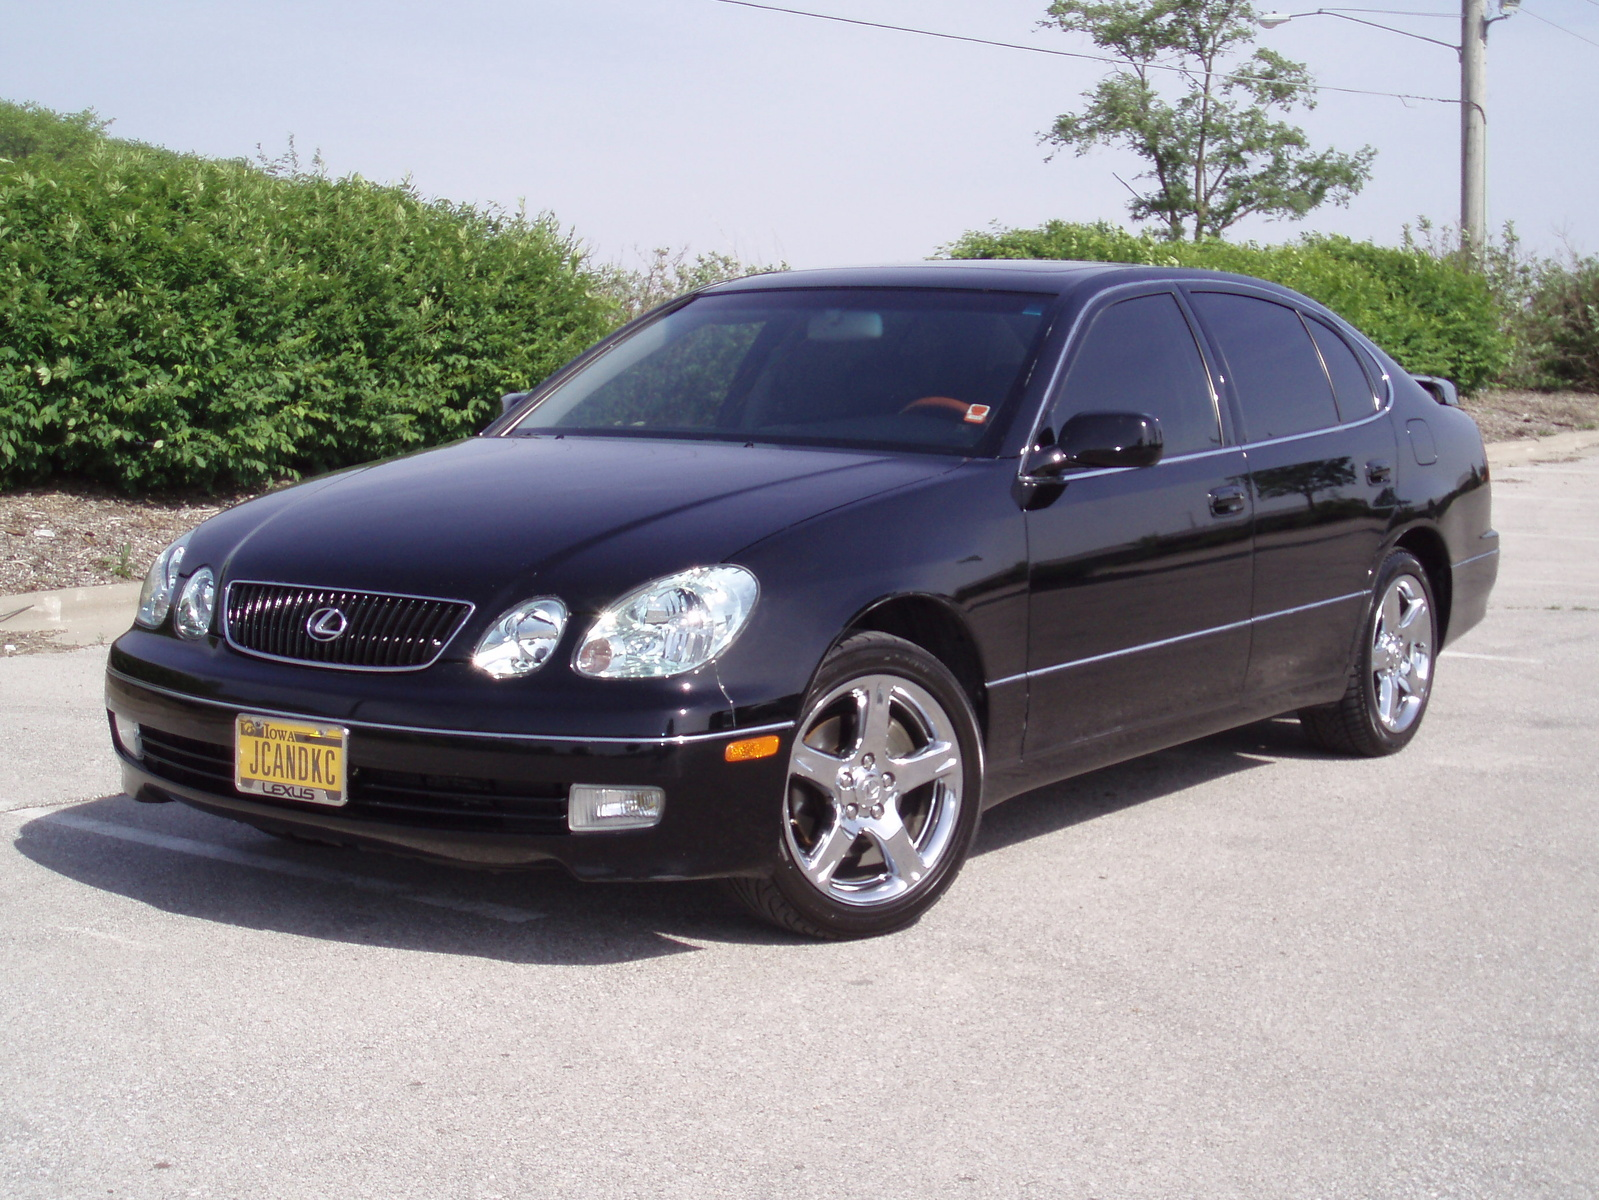 Picture of 2002 Lexus GS 430